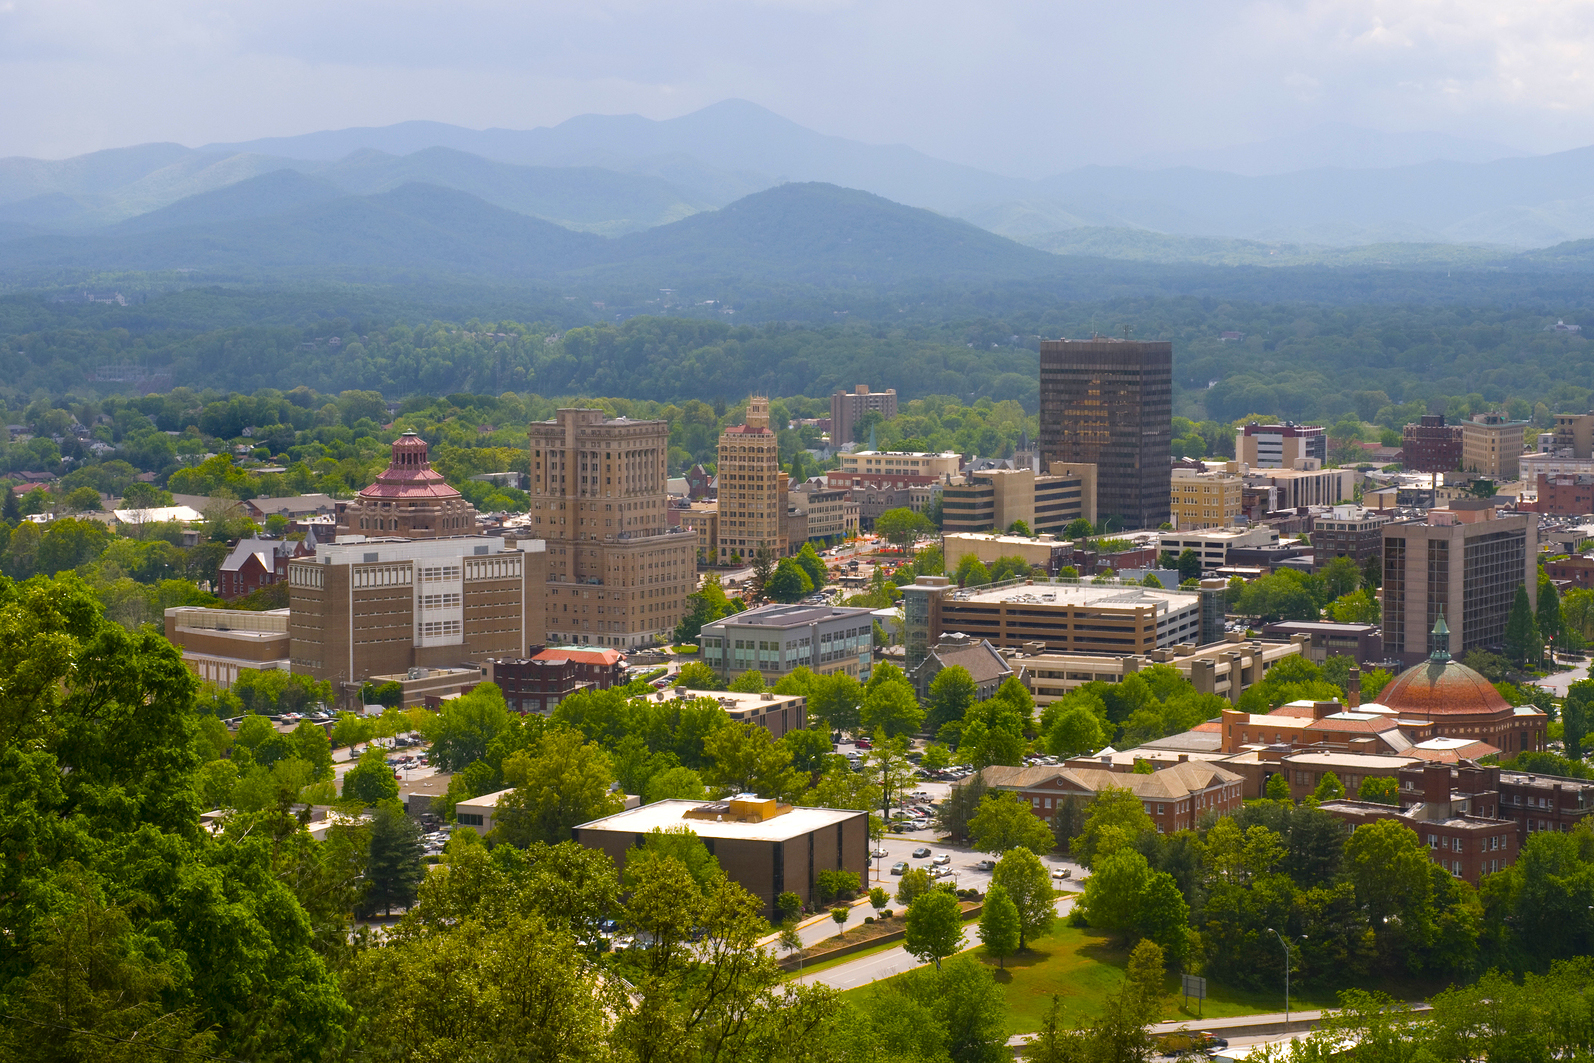 Asheville, NC is just one hot market for retirees looking to escape to North Carolina.